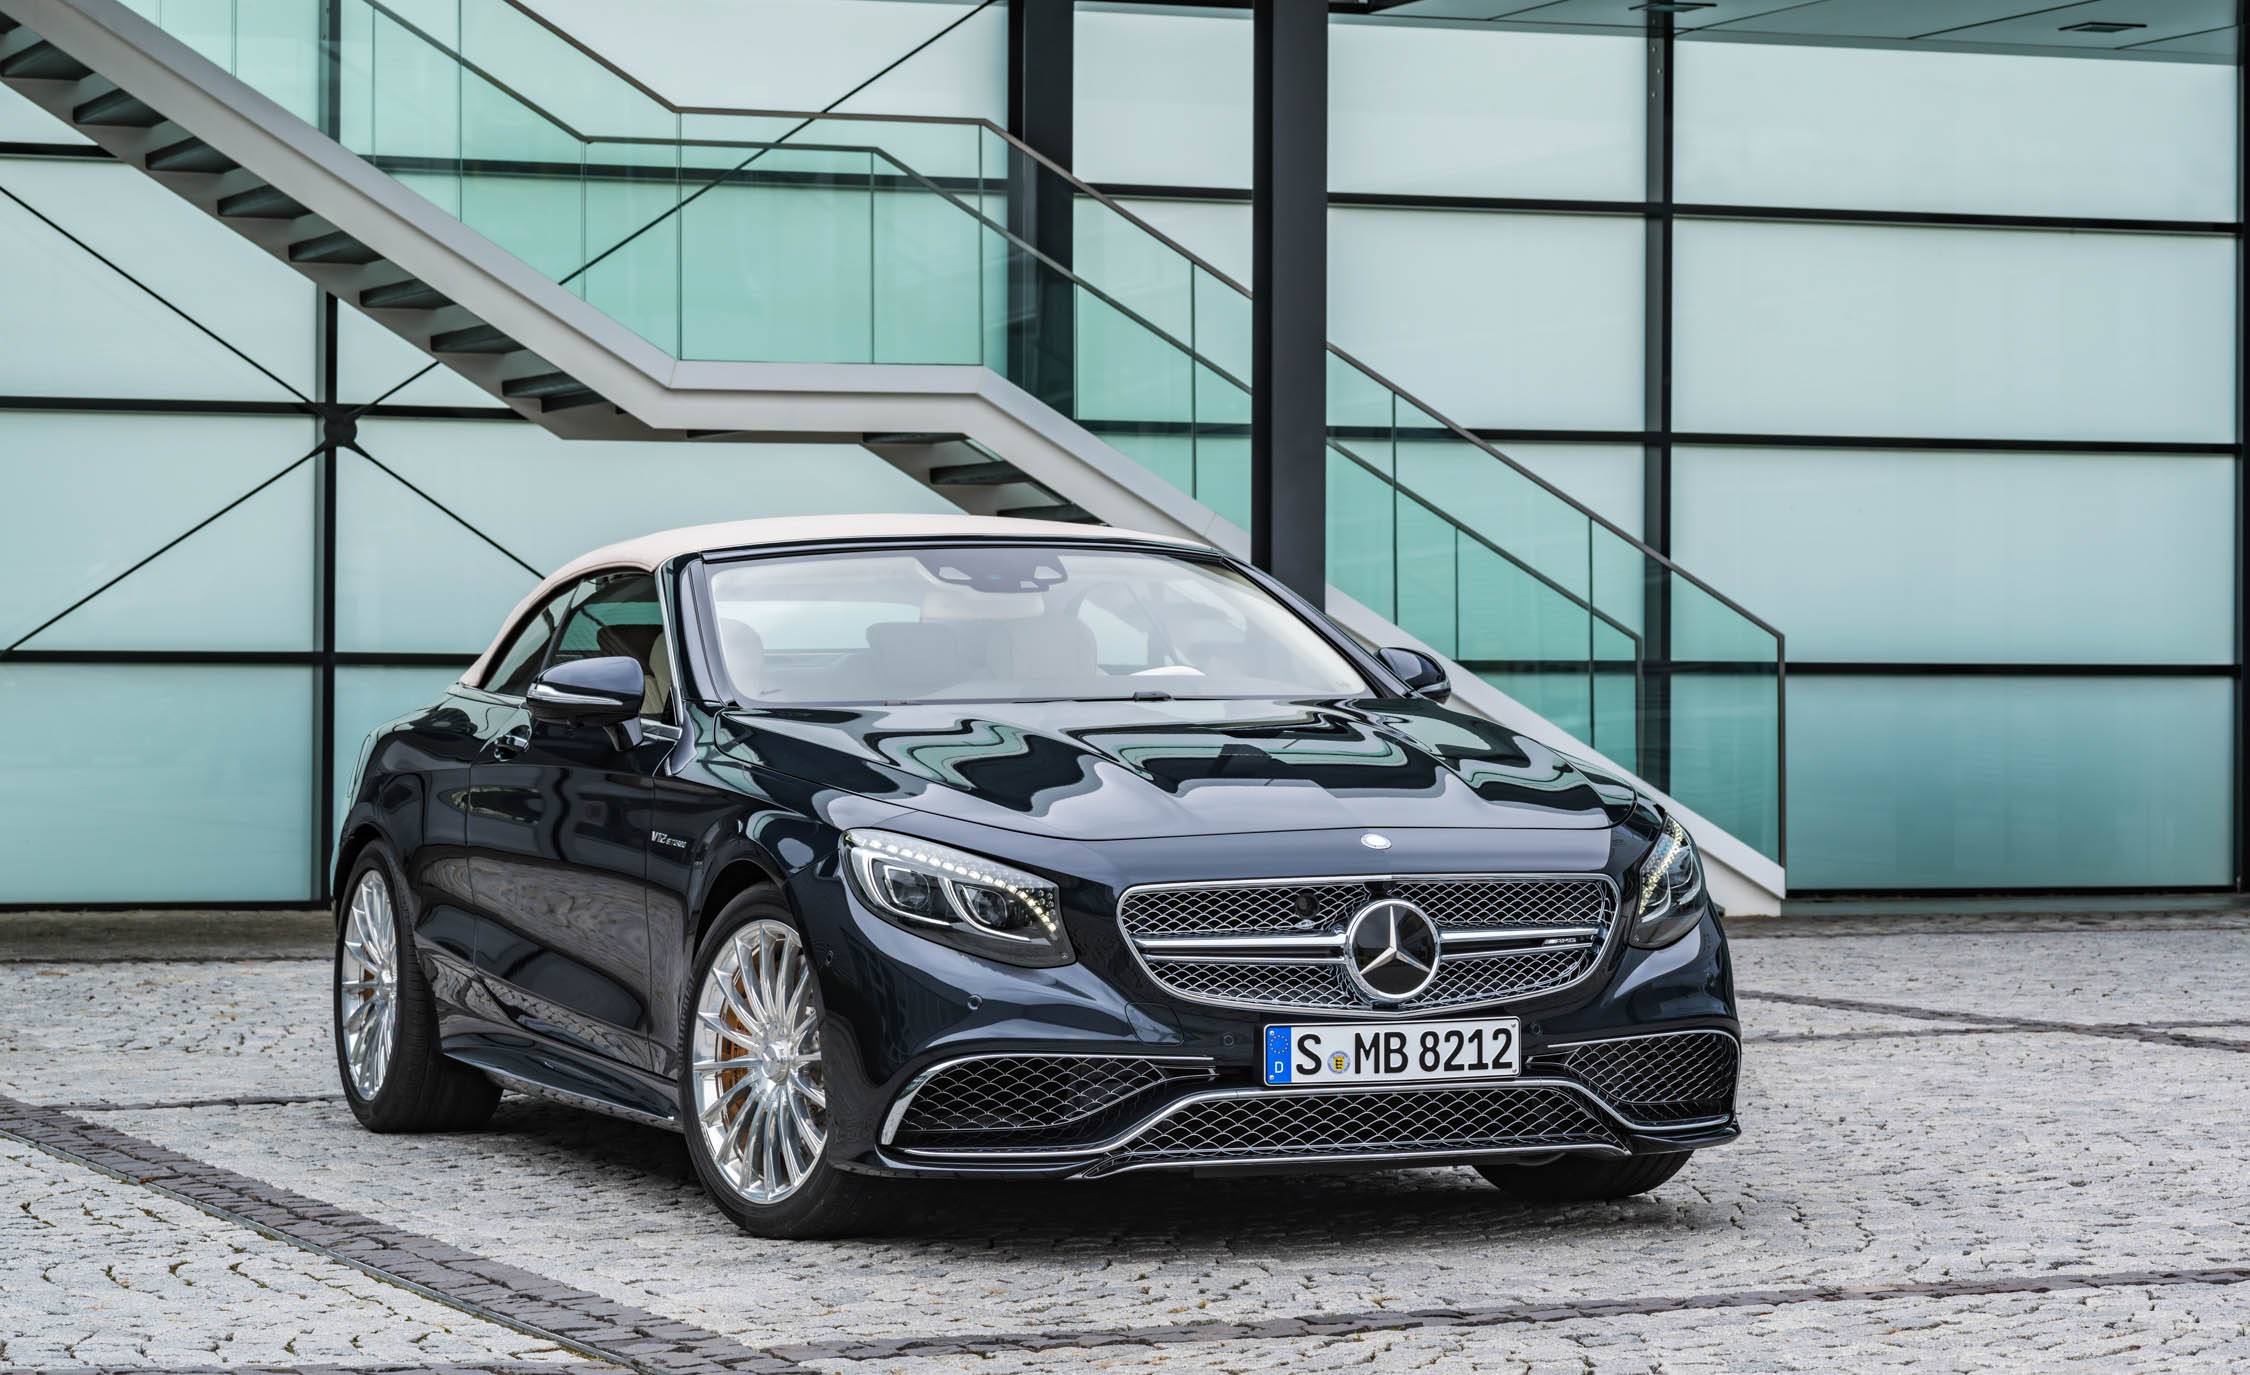 2017 Mercedes Amg S65 Cabriolet Exterior Front And Roof Close (View 12 of 15)